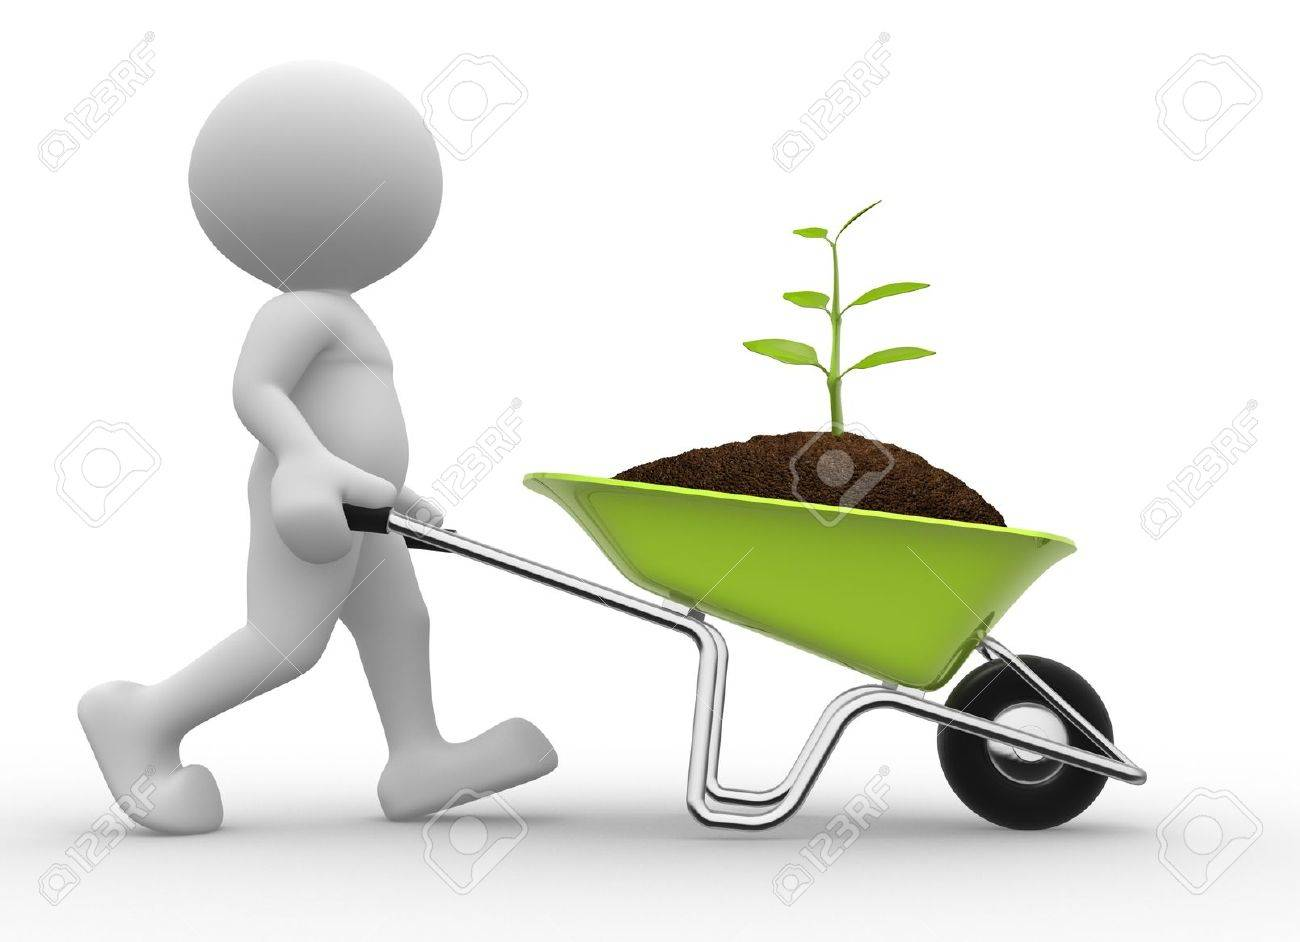 3d people - man, person with a wheelbarrow and a seedling Standard-Bild - 17639972